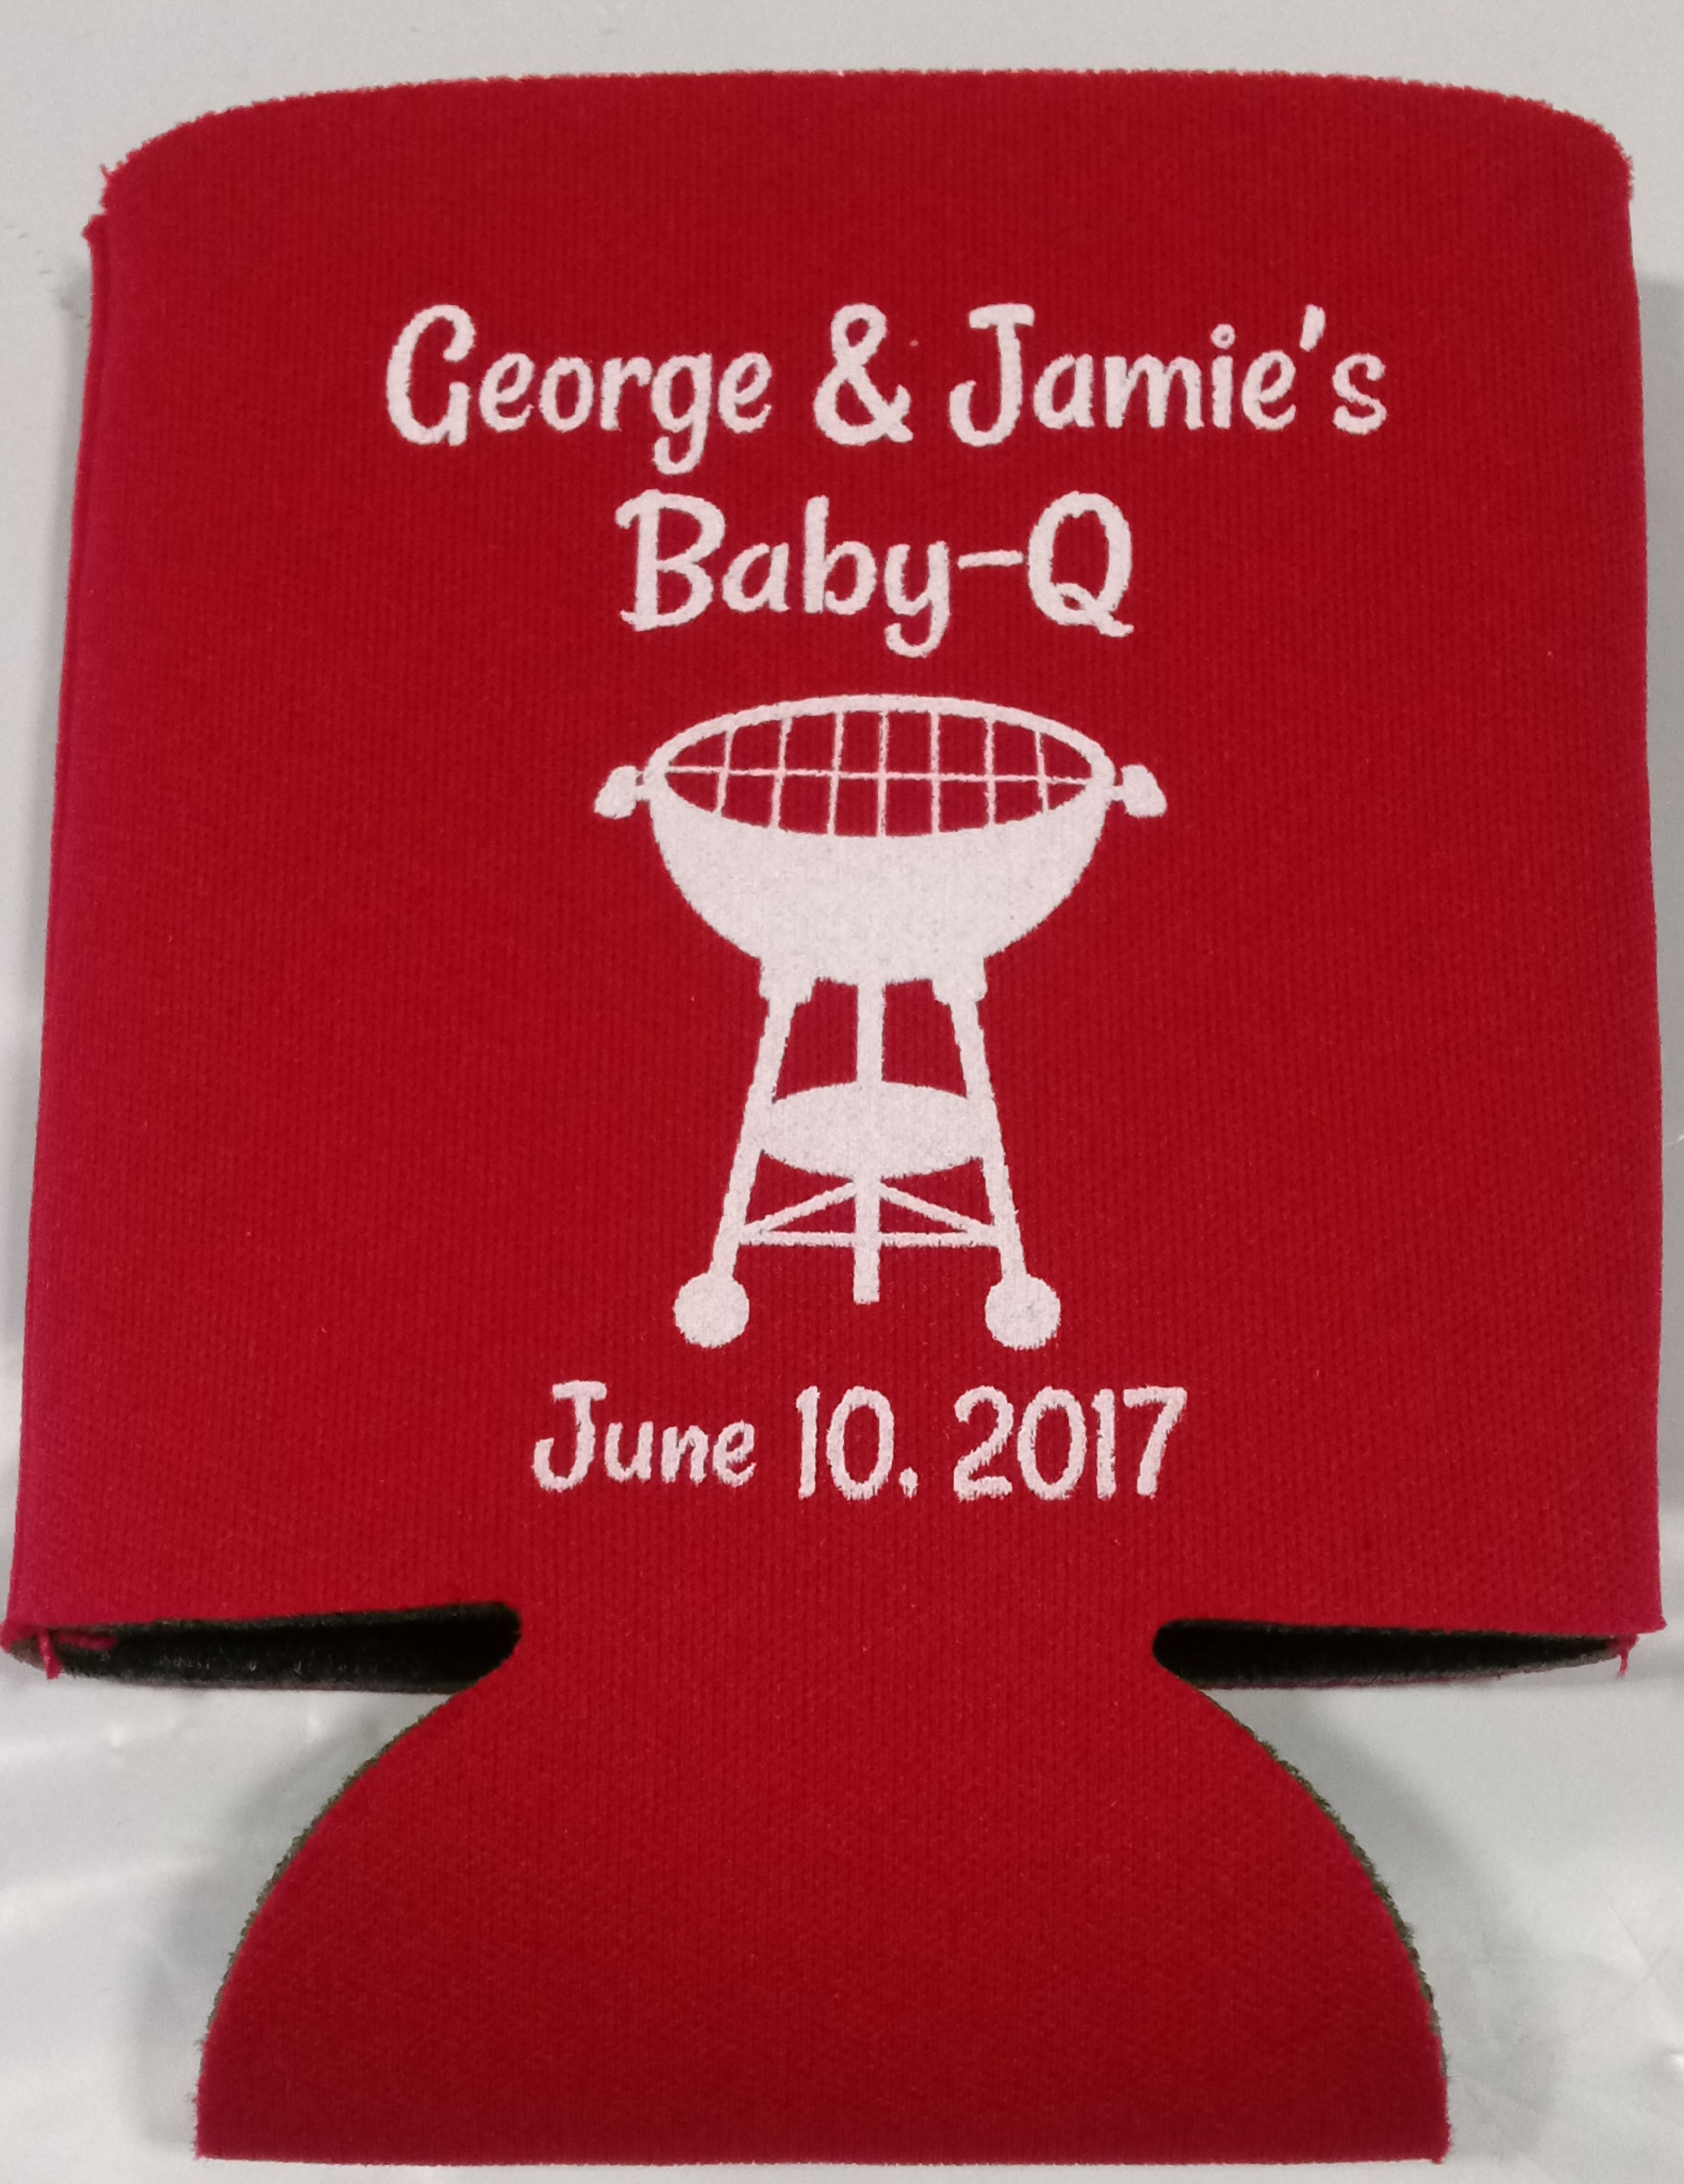 baby q baby shower party favors Can Coolers 1121791793